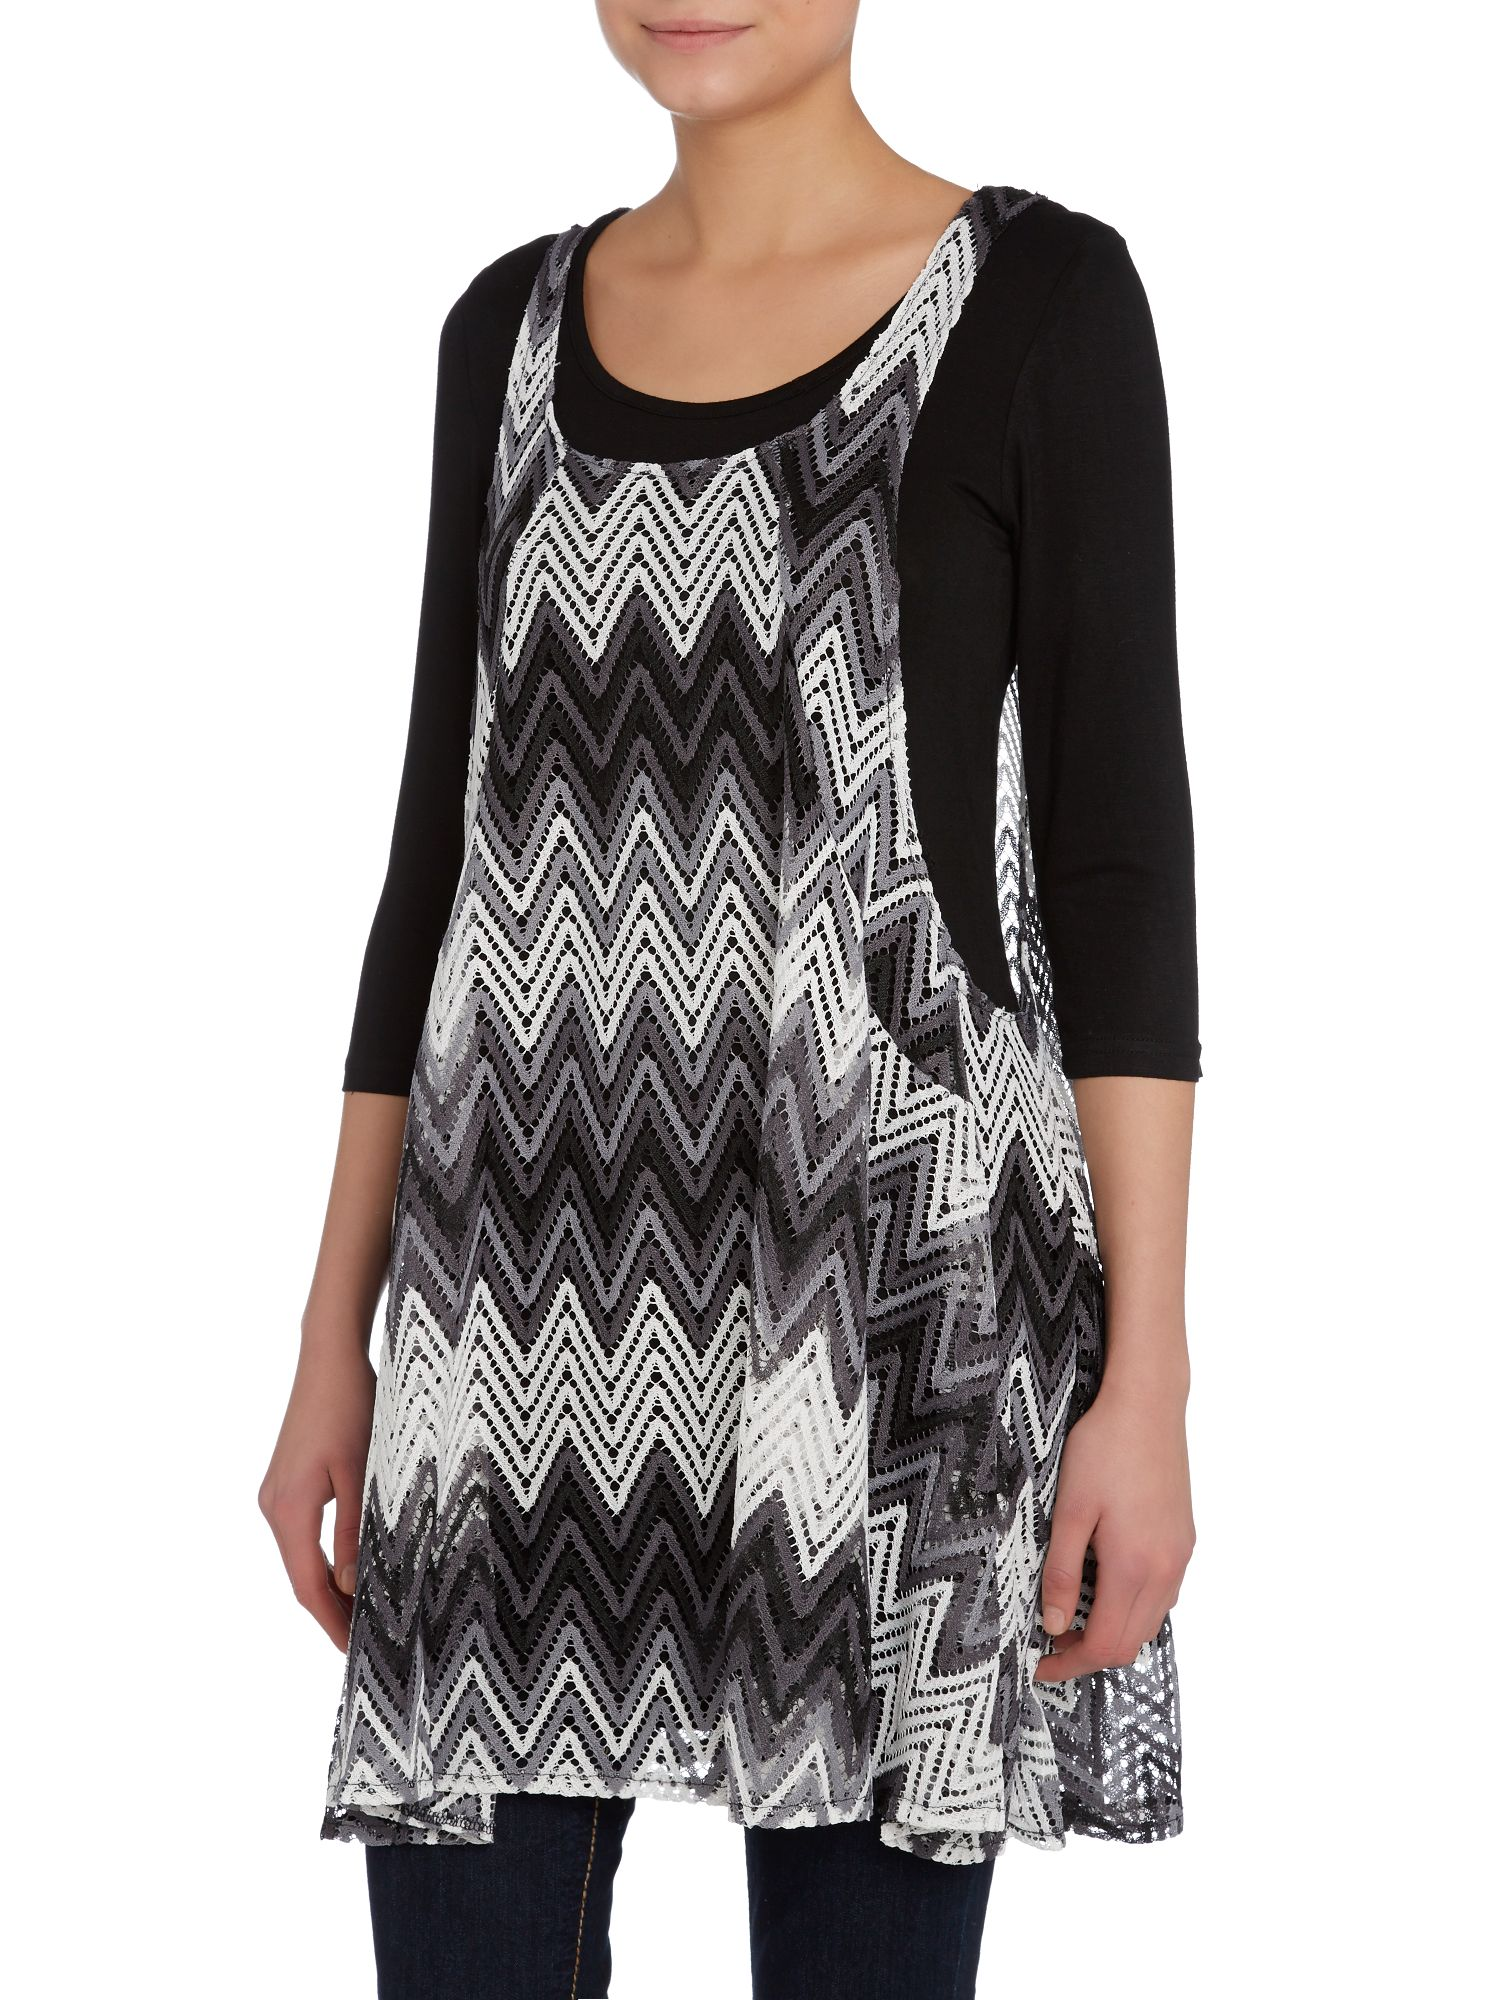 2 in 1 horizontal zigzag top